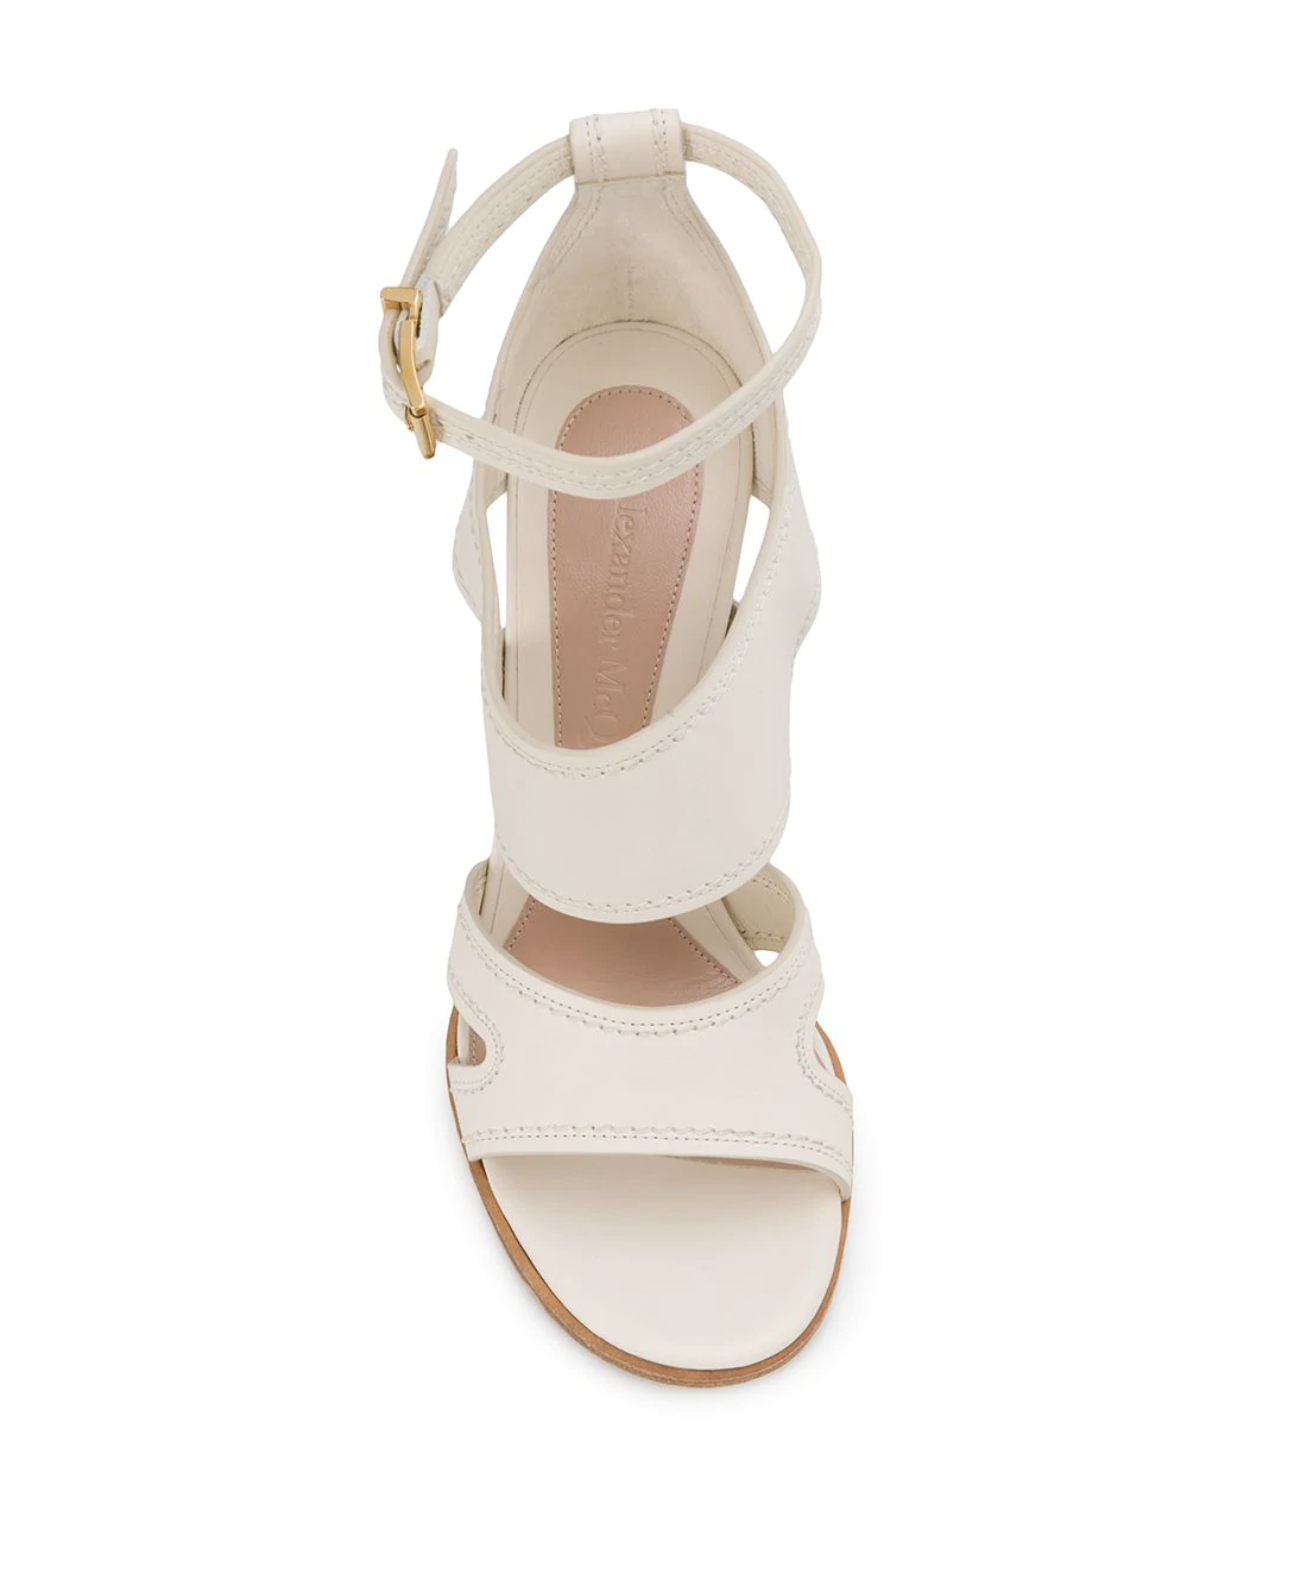 Alexander McQueen No.13 wedge sandals